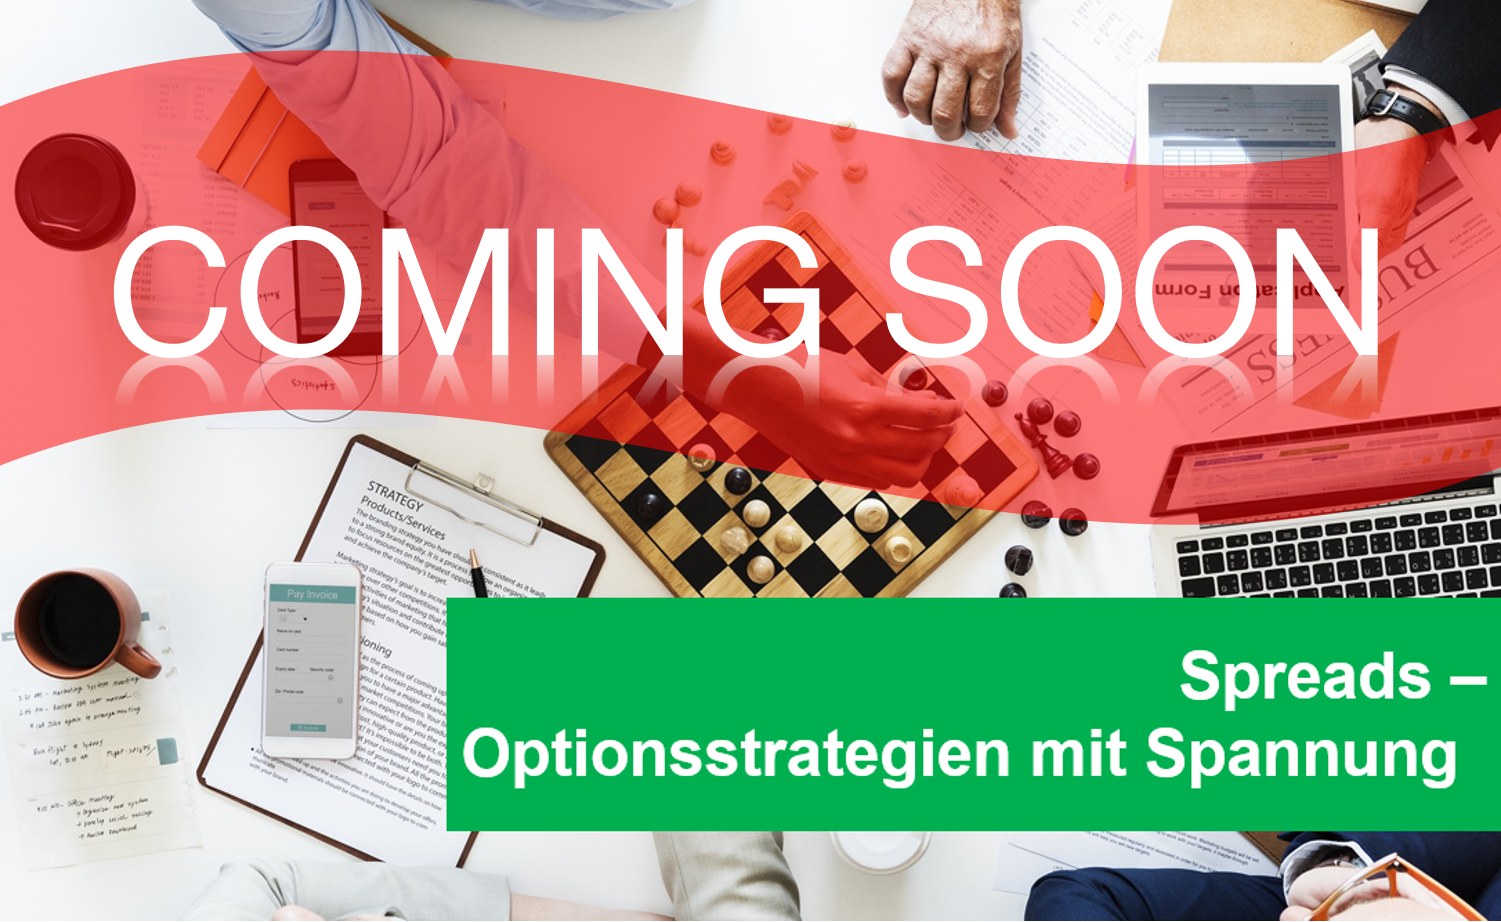 Spreads - Optionsstrategien mit Spannung Option - 09